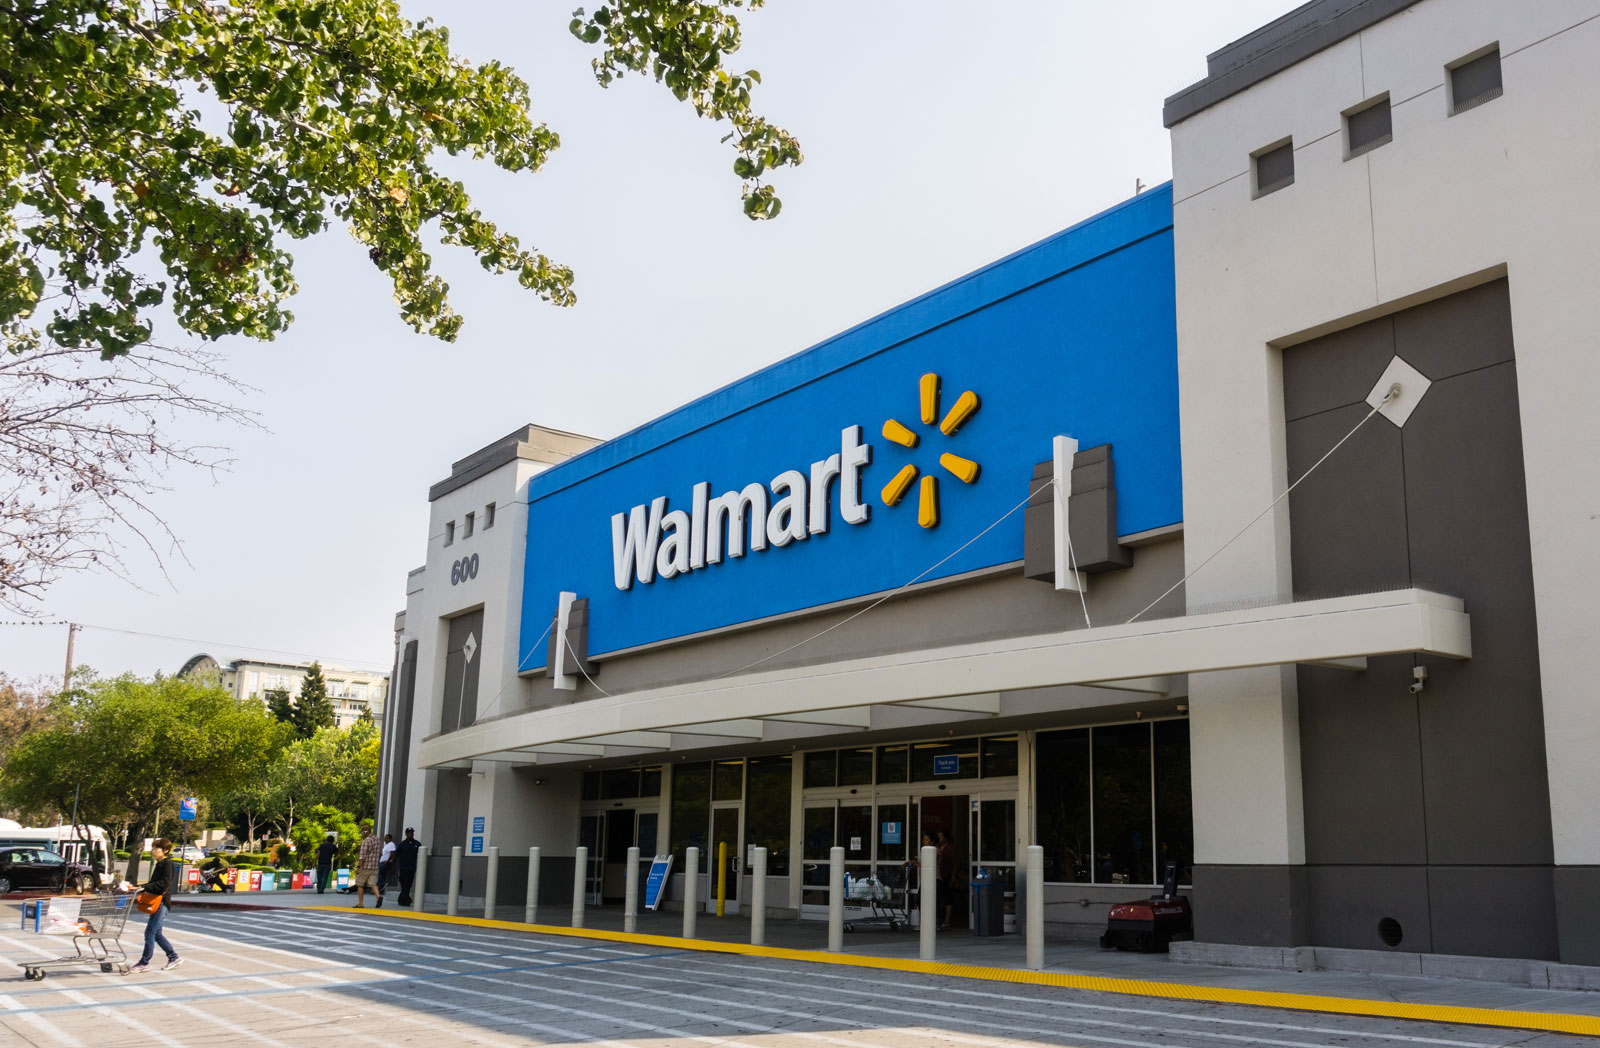 Walmart shares surge to all-time high following launch of Walmart+